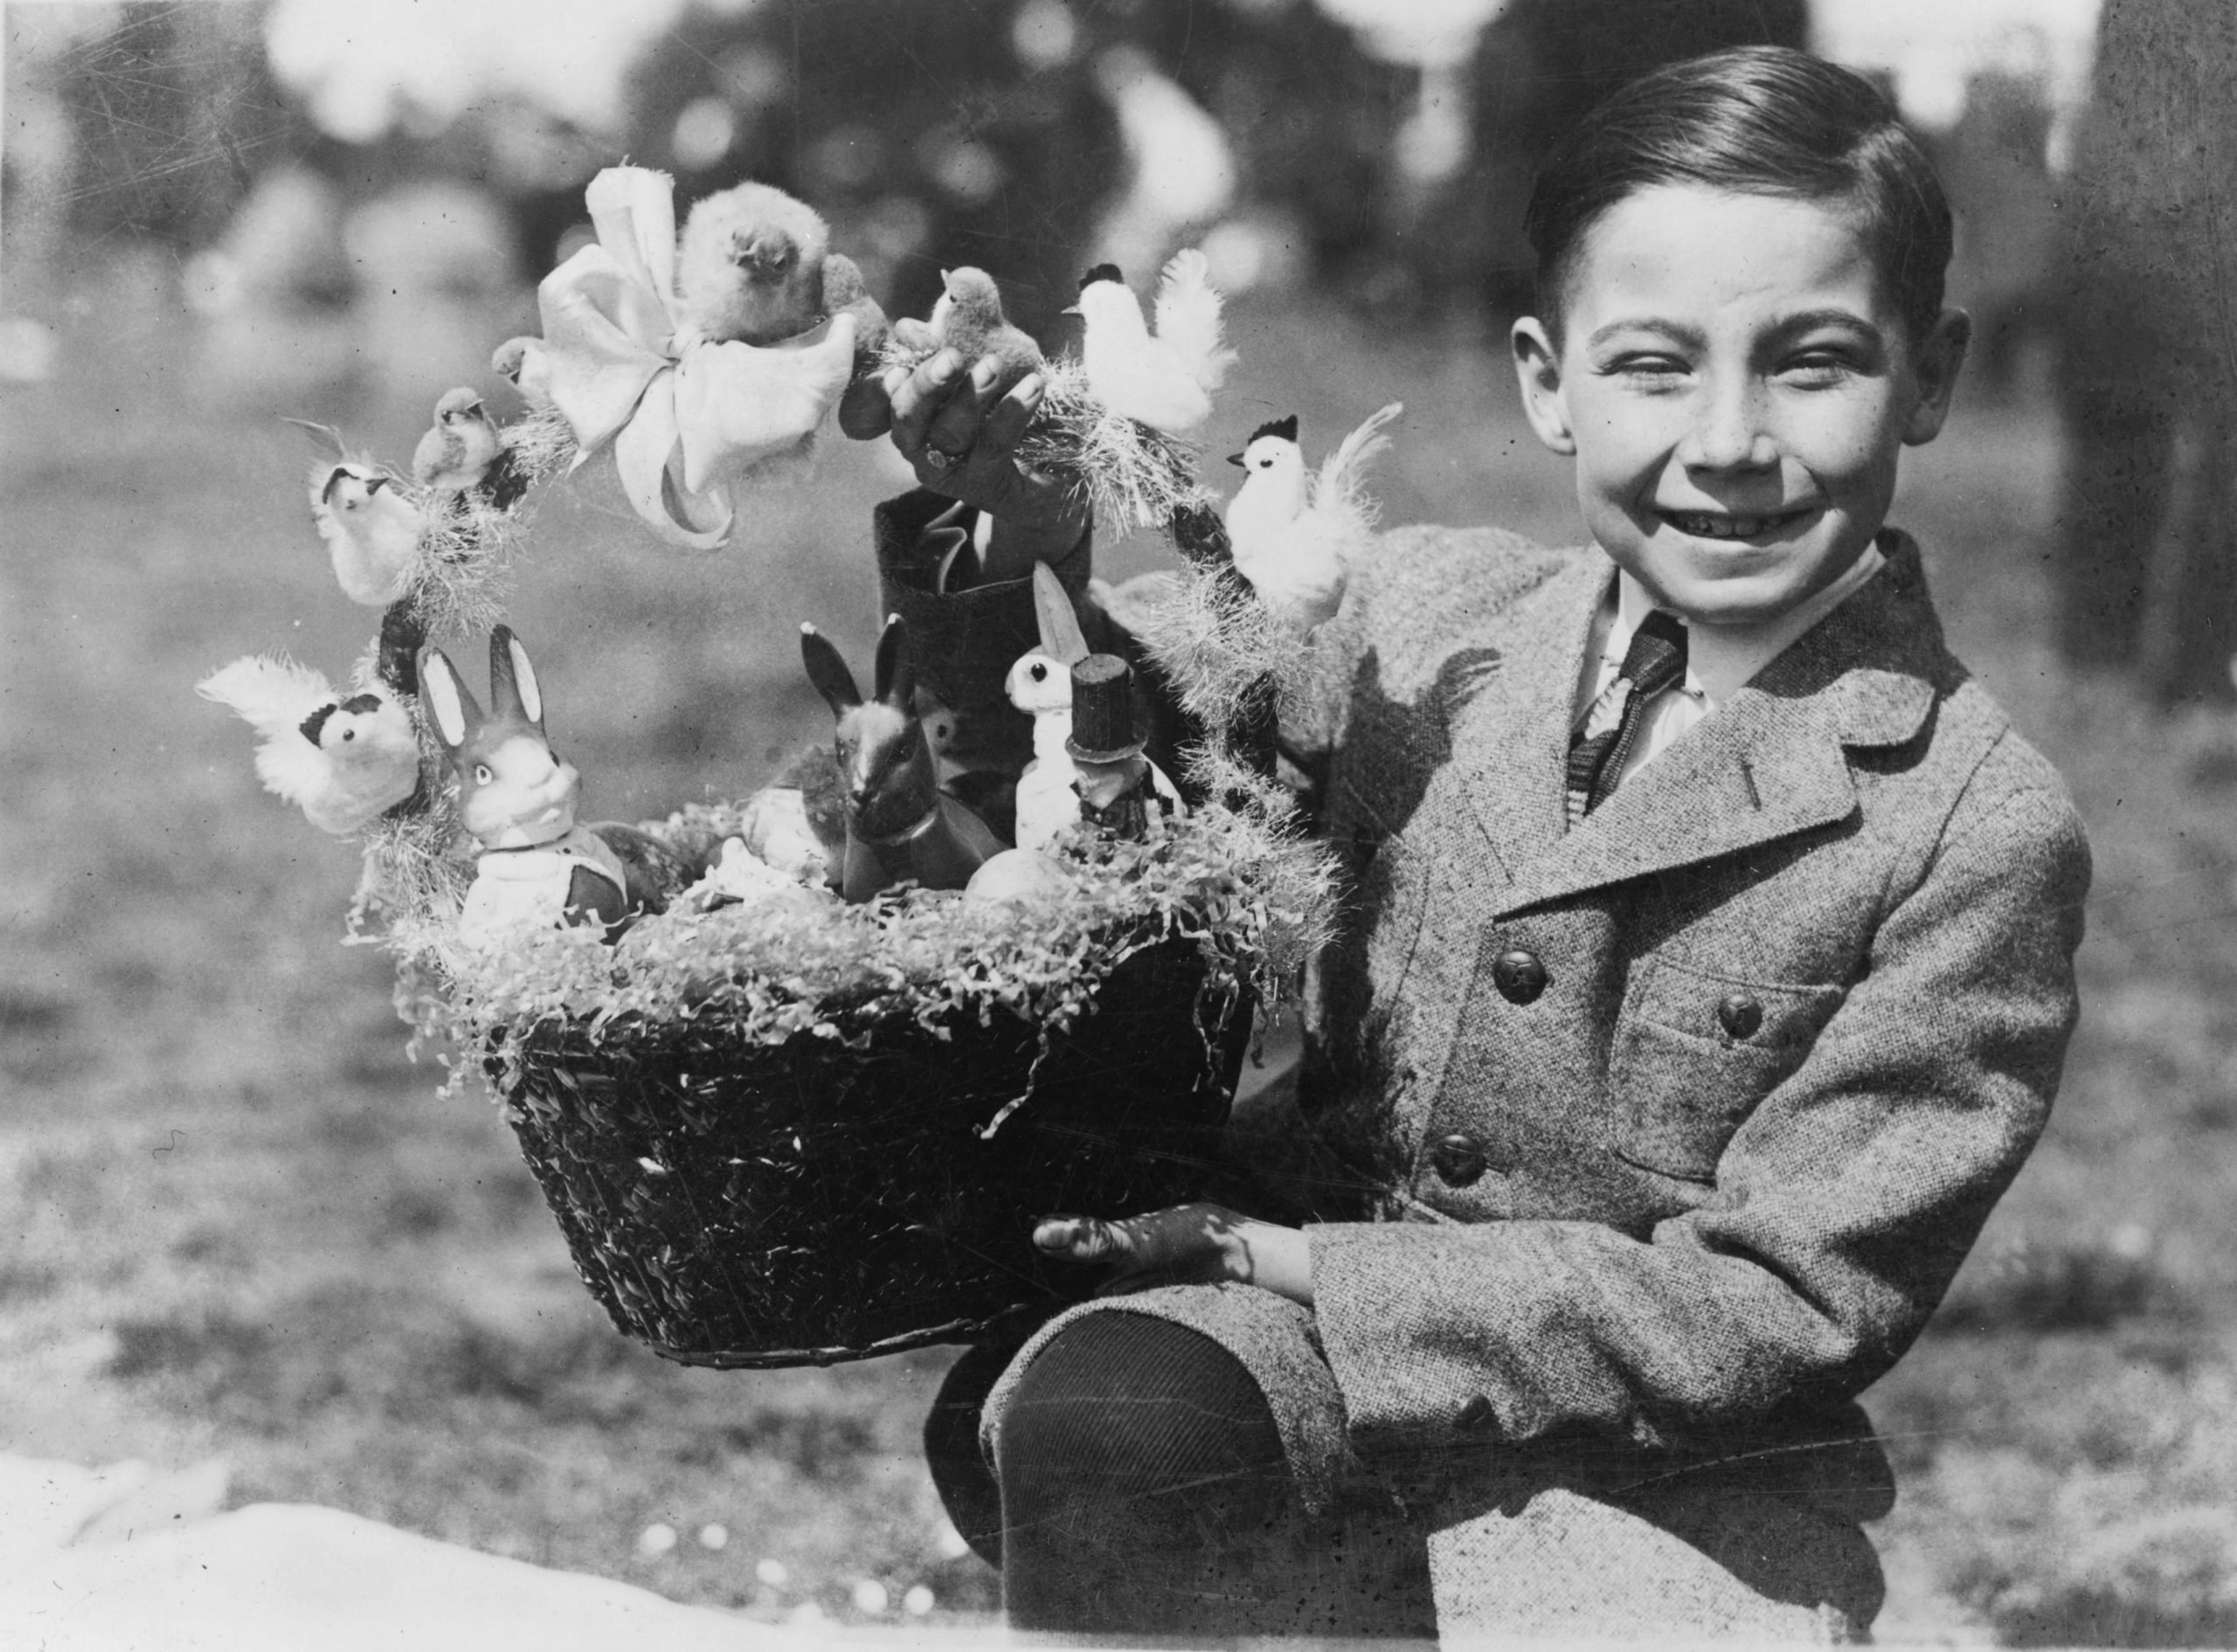 Vintage Fotos Charming Vintage Photos Of How Easter Used To Be Celebrated